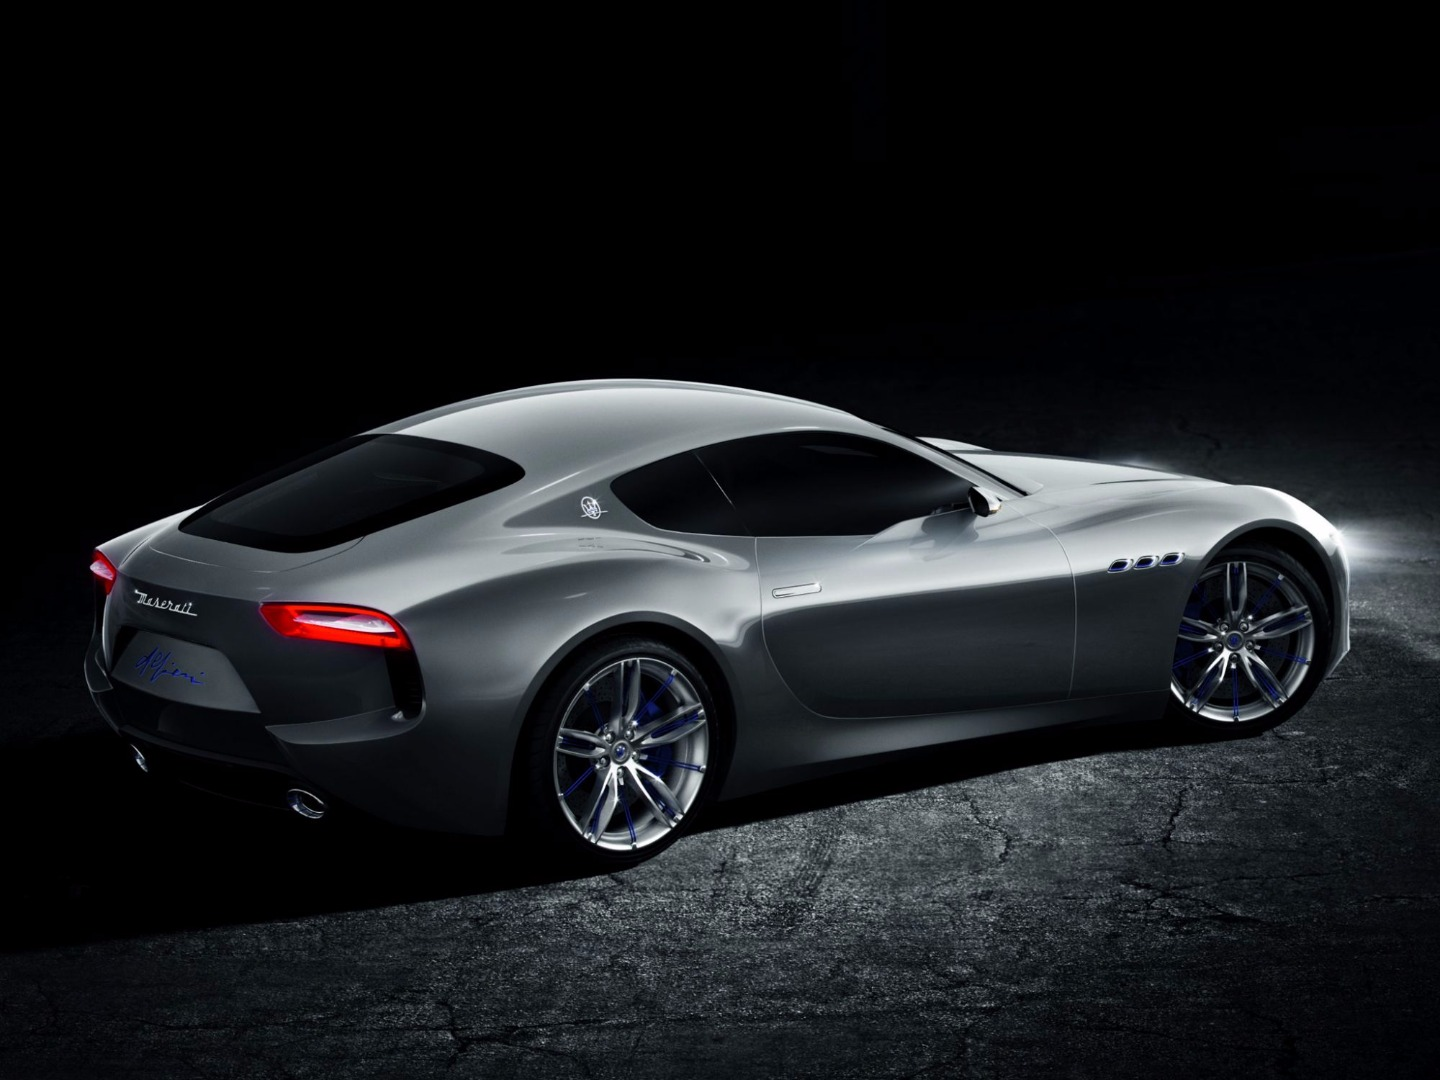 News - 2020 Alfieri Coupe To Pioneer Fully Electric Maseratis